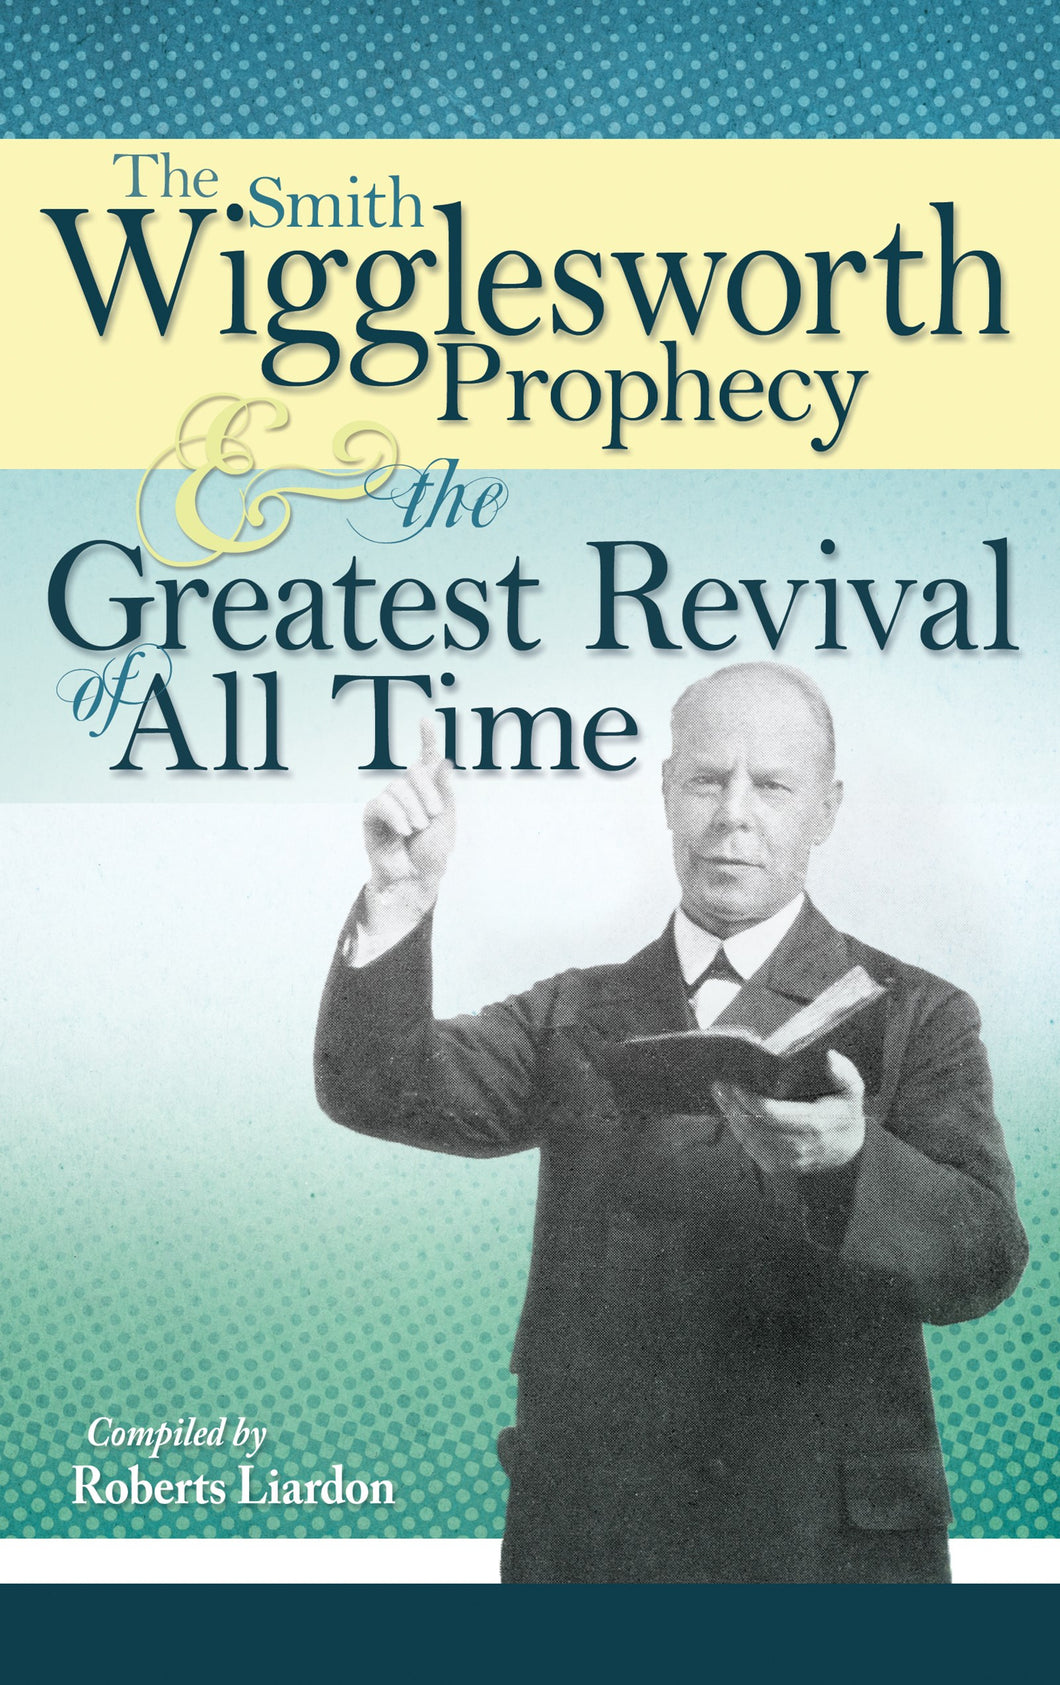 Smith Wigglesworth Prophecy & Greatest Revival